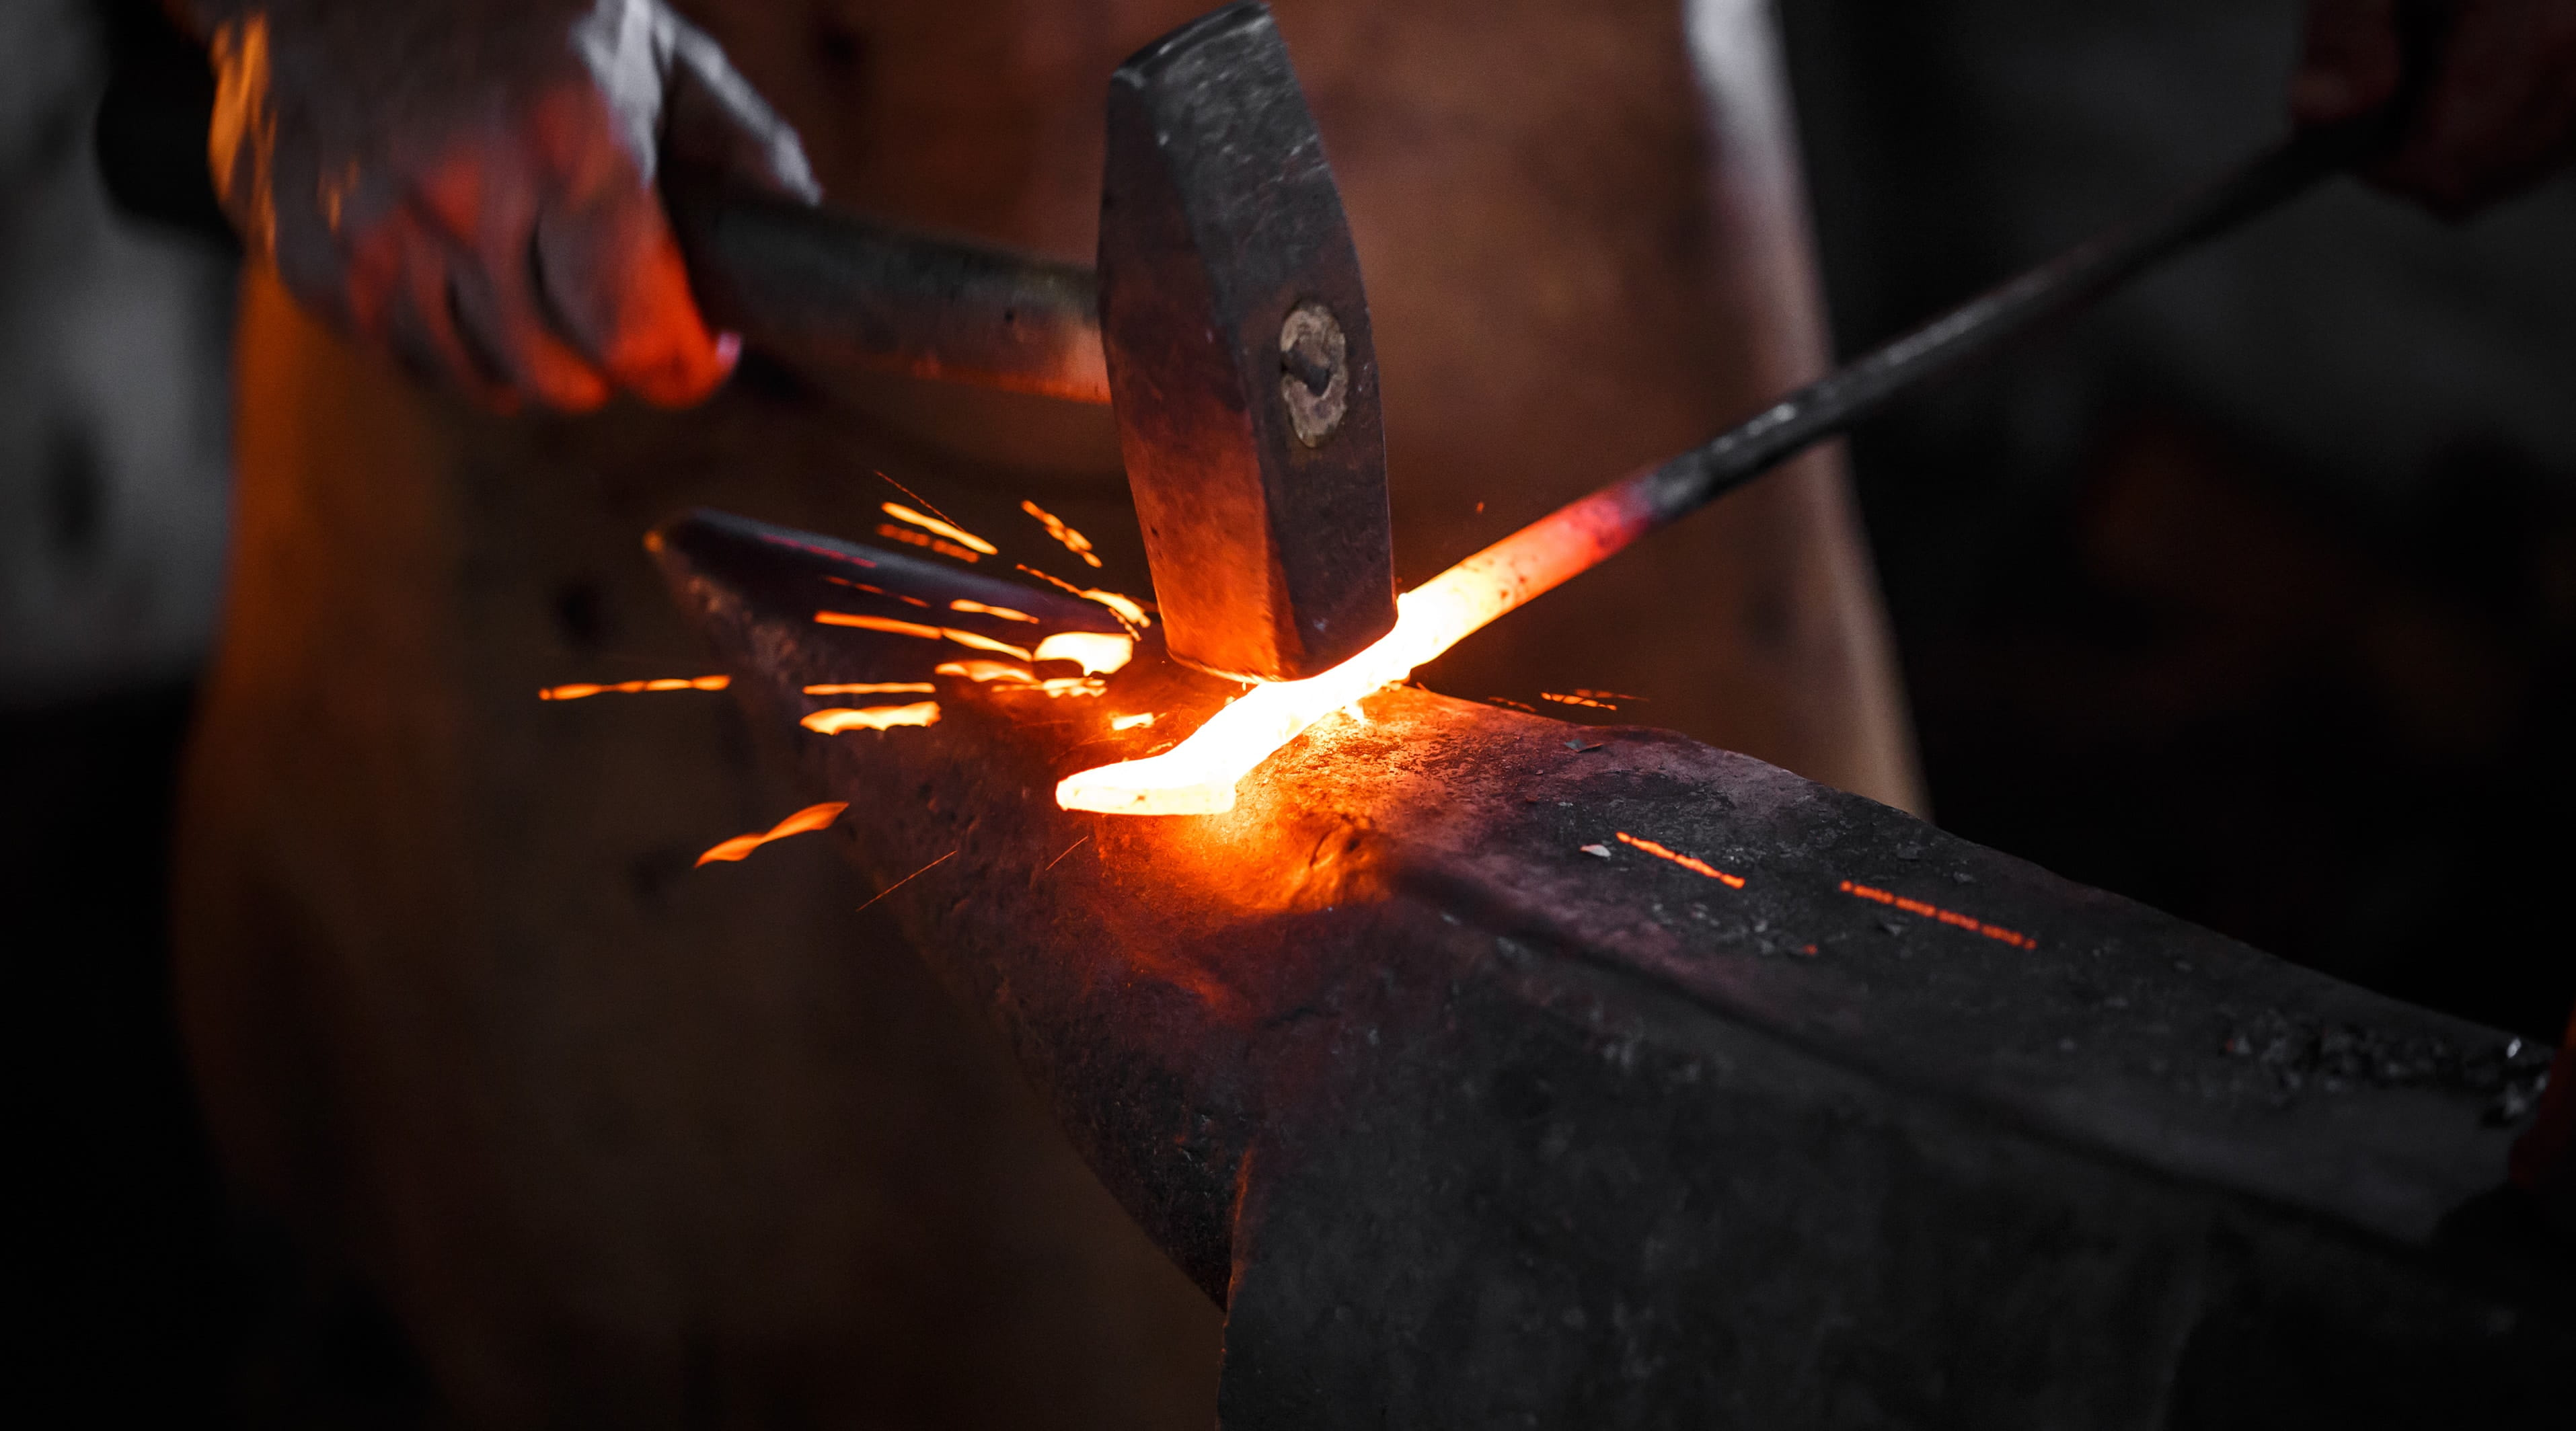 https://economia.icaew.com:443/-/media/economia/images/article-images/blacksmith630.ashx